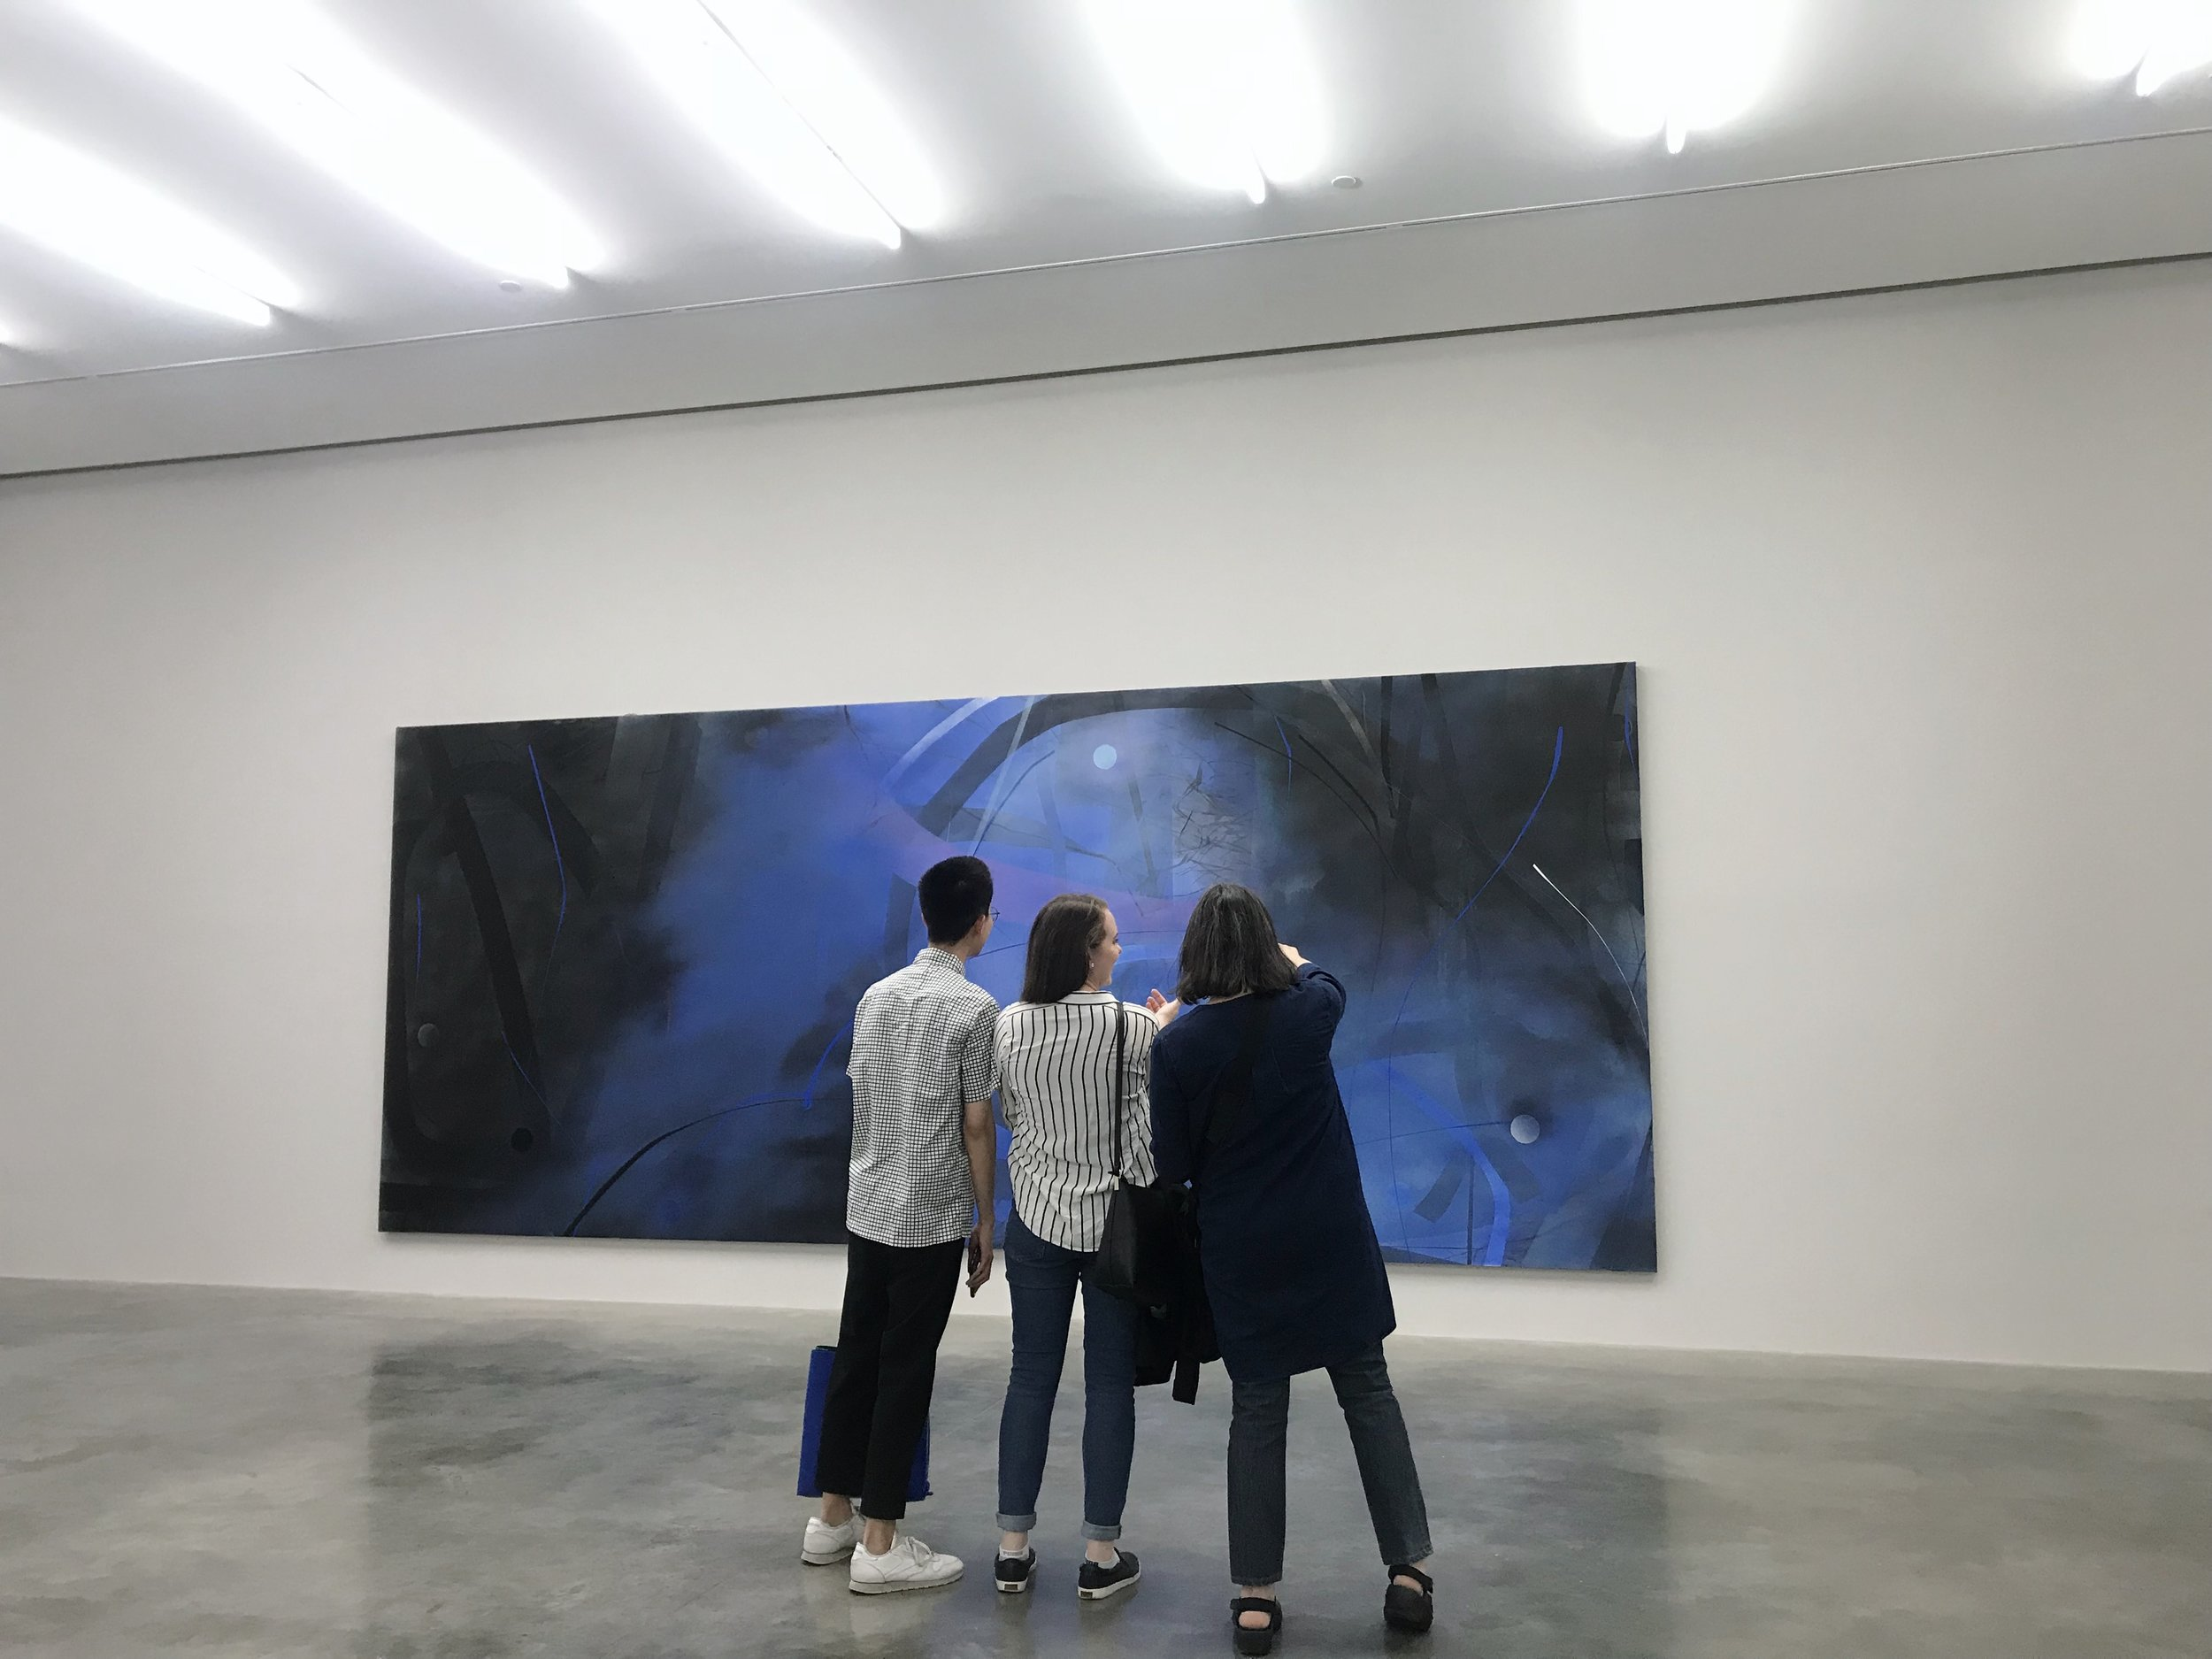 Ronald, Alison, and Elizabeth taking a closer look at a Zhou Li painting at the White Cube Gallery